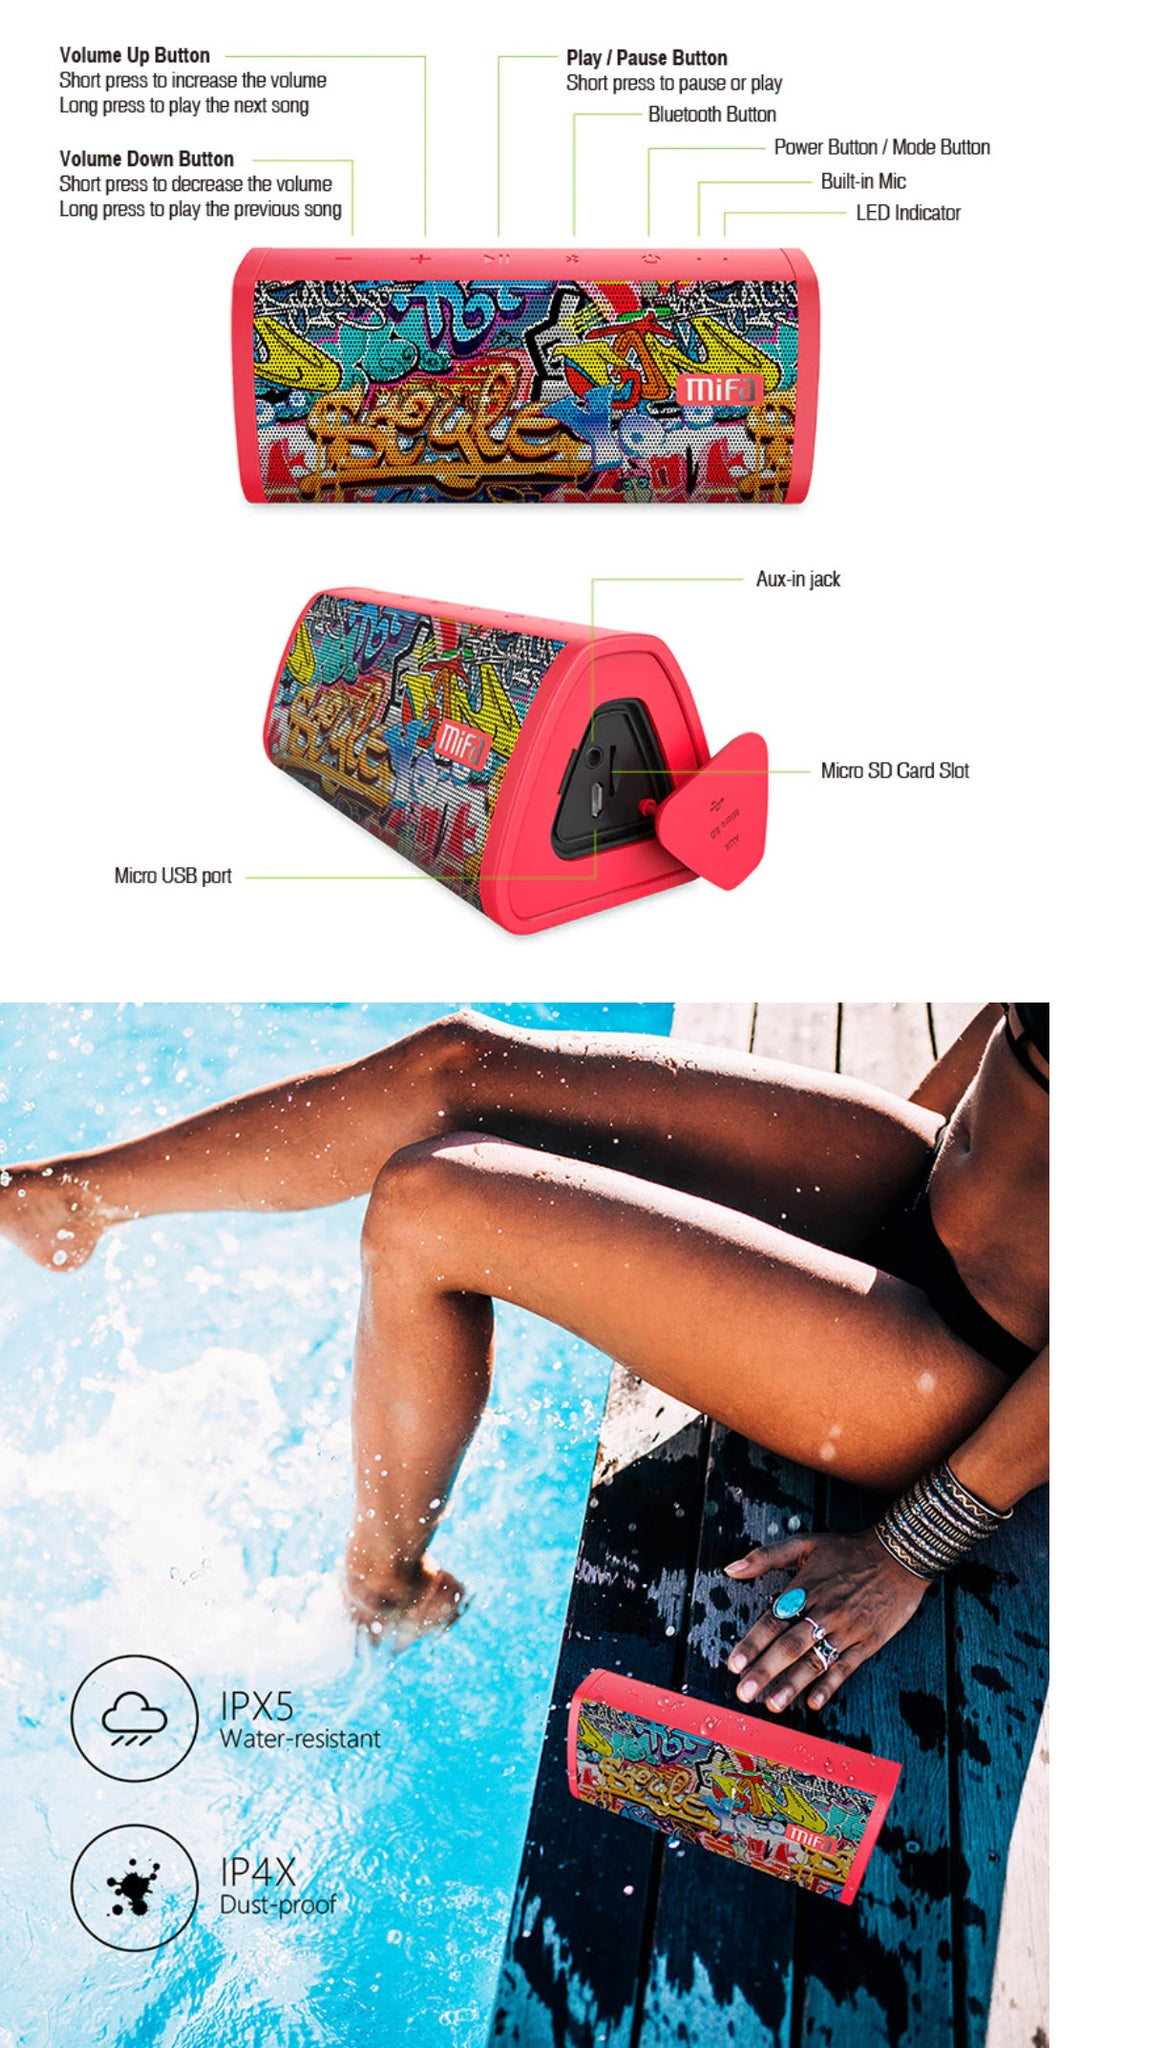 MIFA Red-Graffiti Bluetooth Speaker Product Features Woman By Pool with Mifa Speaker